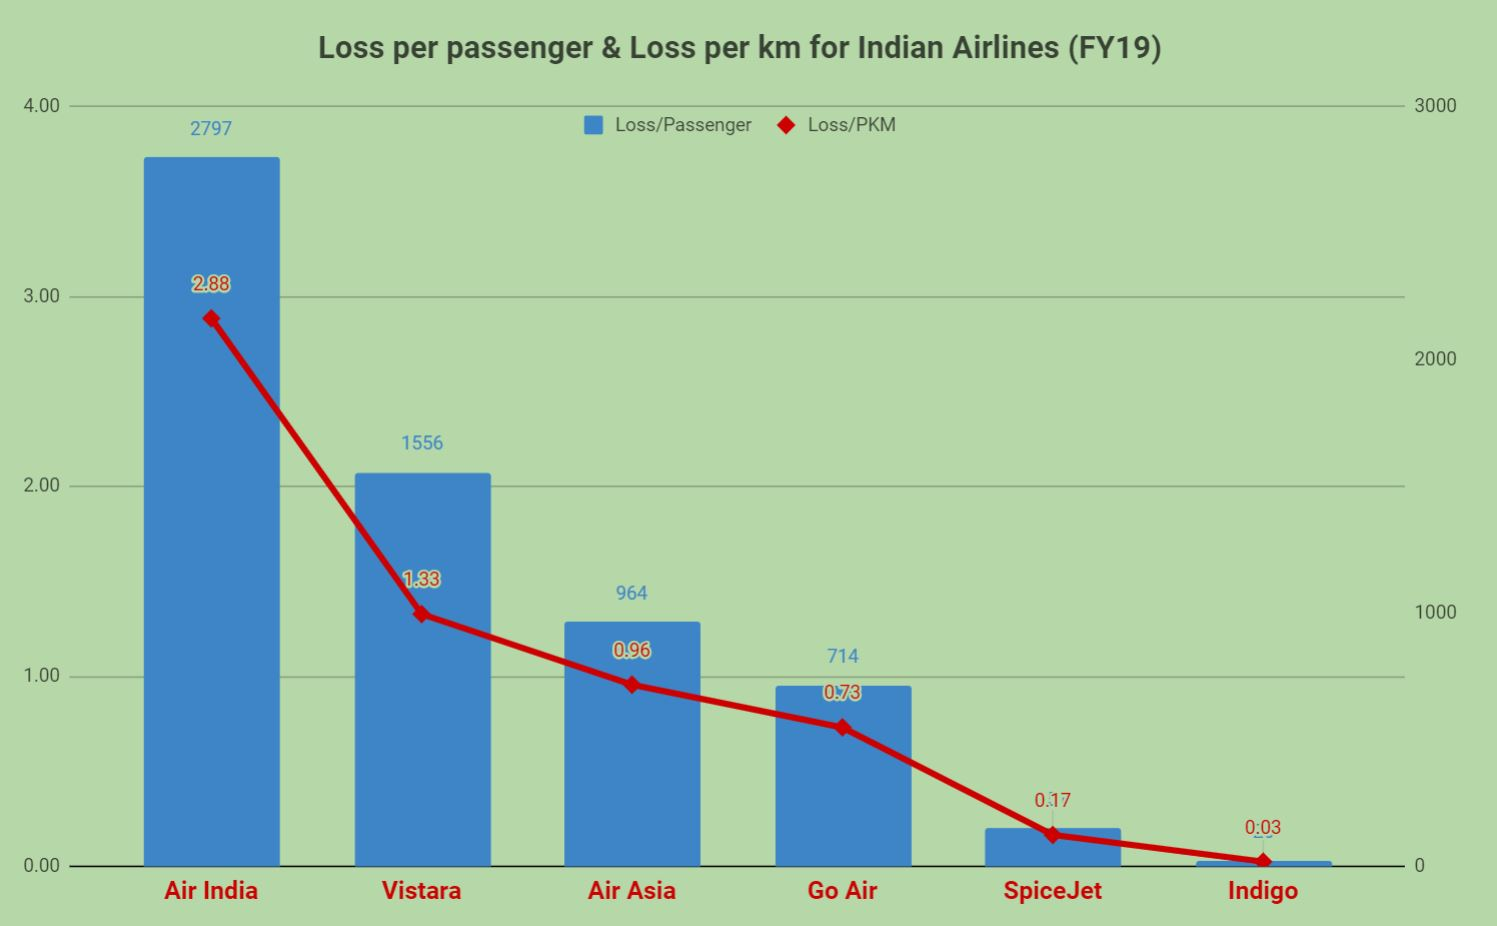 Vistara, Air Asia lead losses in FY19; Vistara loses Rs 1.33/km